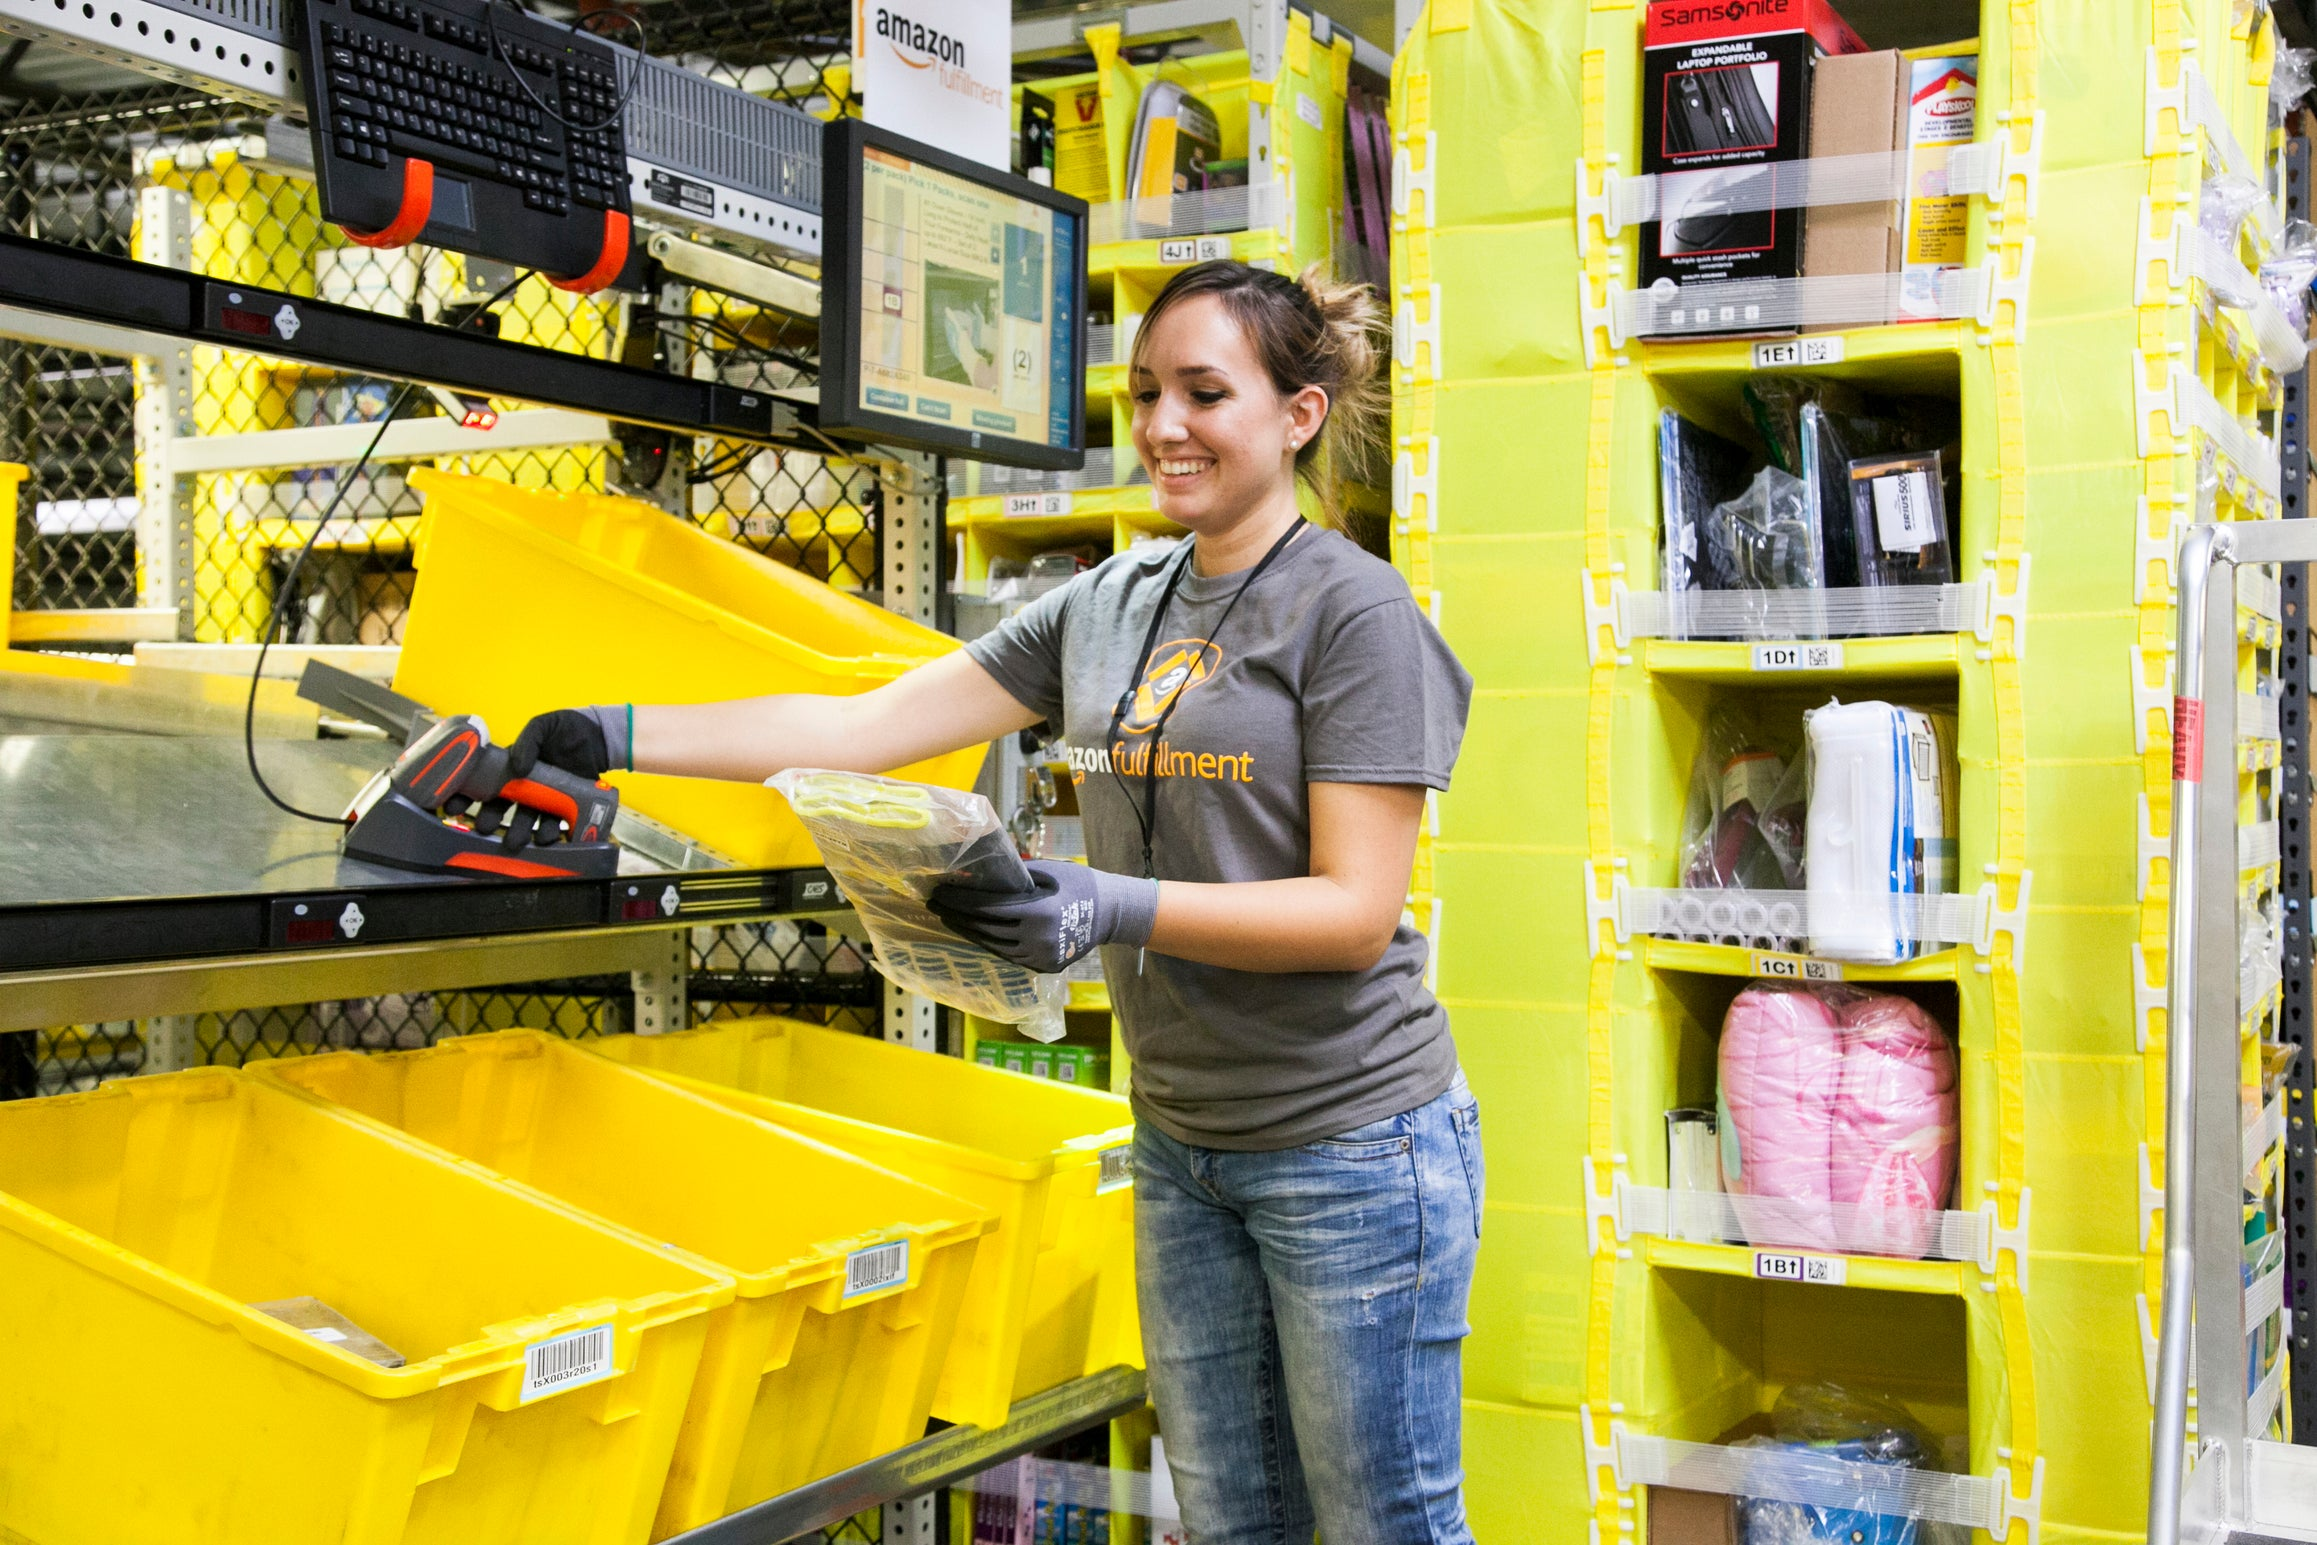 An Amazon fulfillment center employee picking items out of a bin for shipping